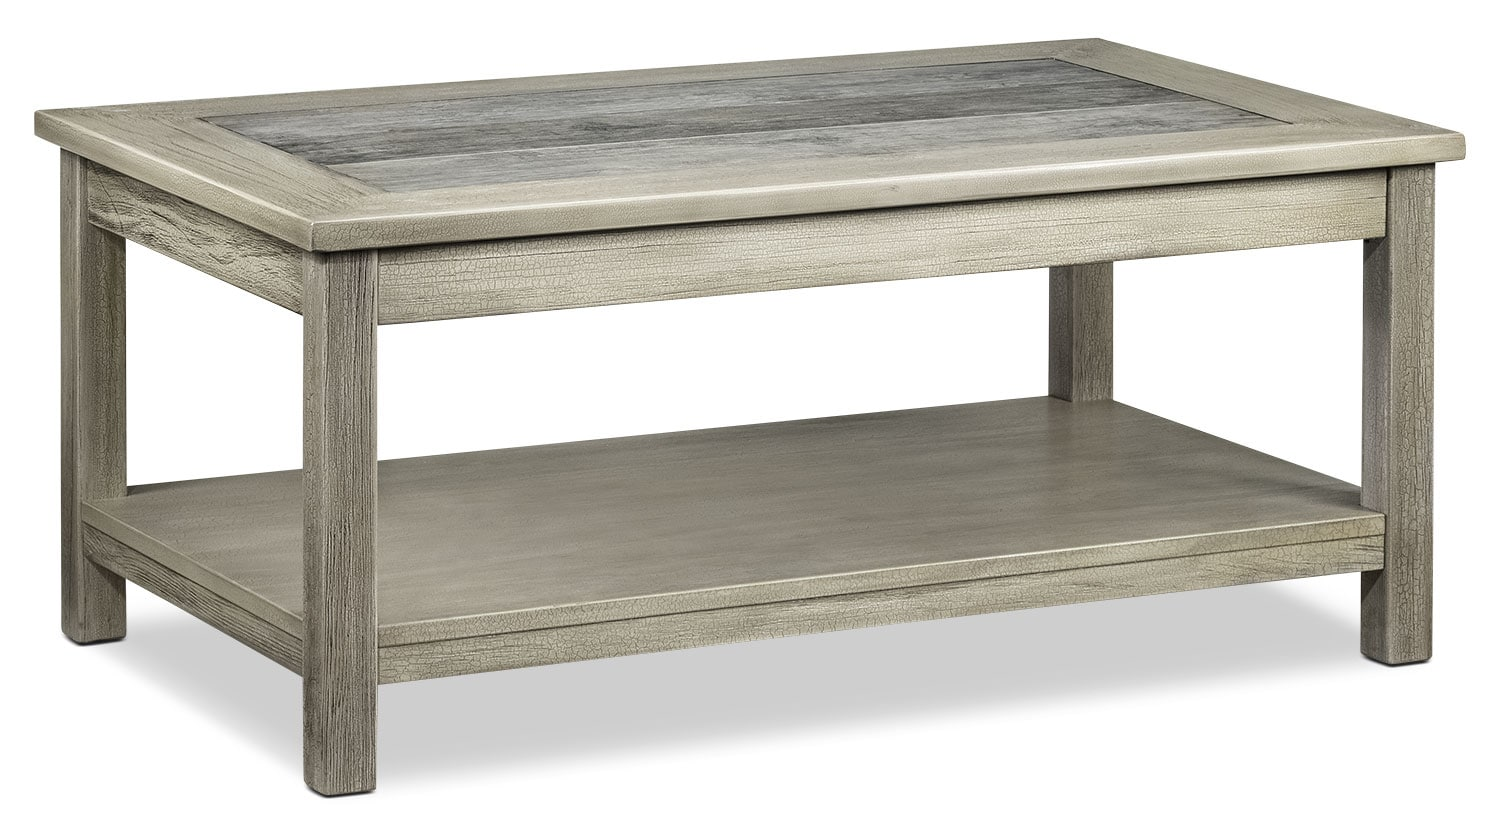 Accent and Occasional Furniture - Thomas Coffee Table - Natural Beige